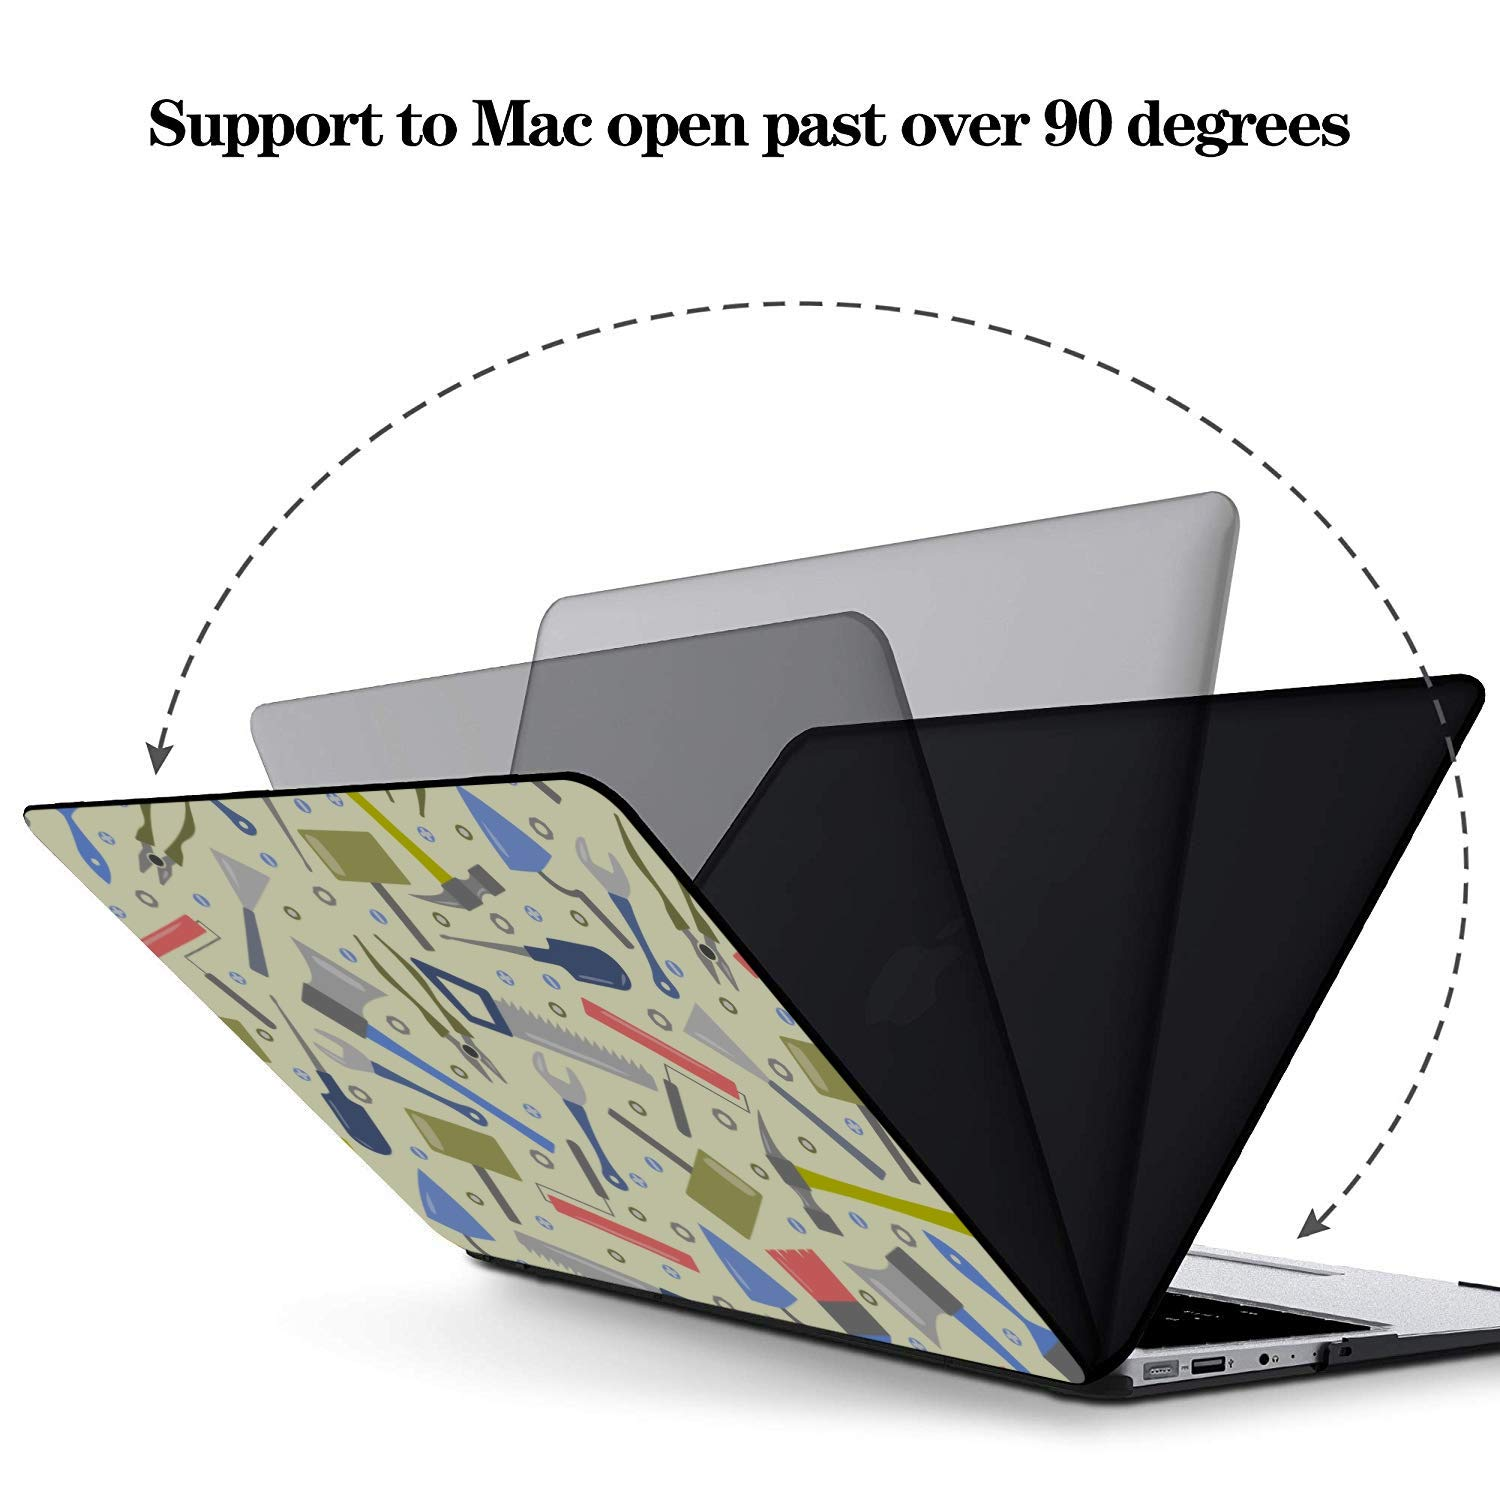 A1706 MacBook Pro Case School Supplies Cute Stationery Bag Plastic Hard Shell Compatible Mac Air 11 Pro 13 15 15 Inch Laptop Case Protection for MacBook 2016-2019 Version